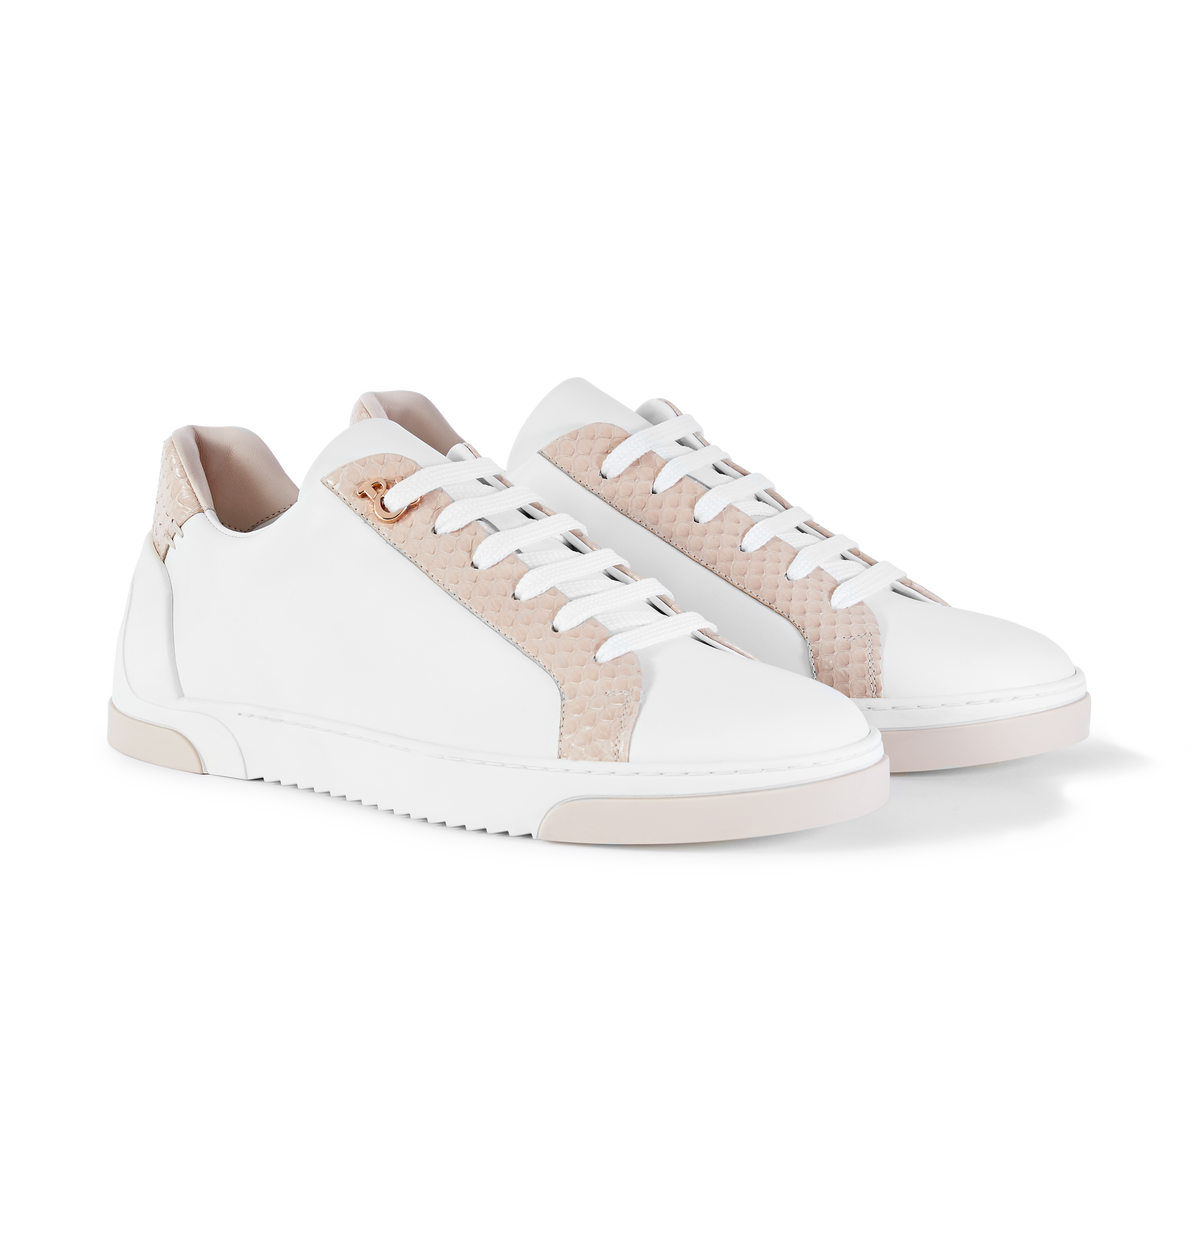 White Leather and Nude Elaphe Sneakers